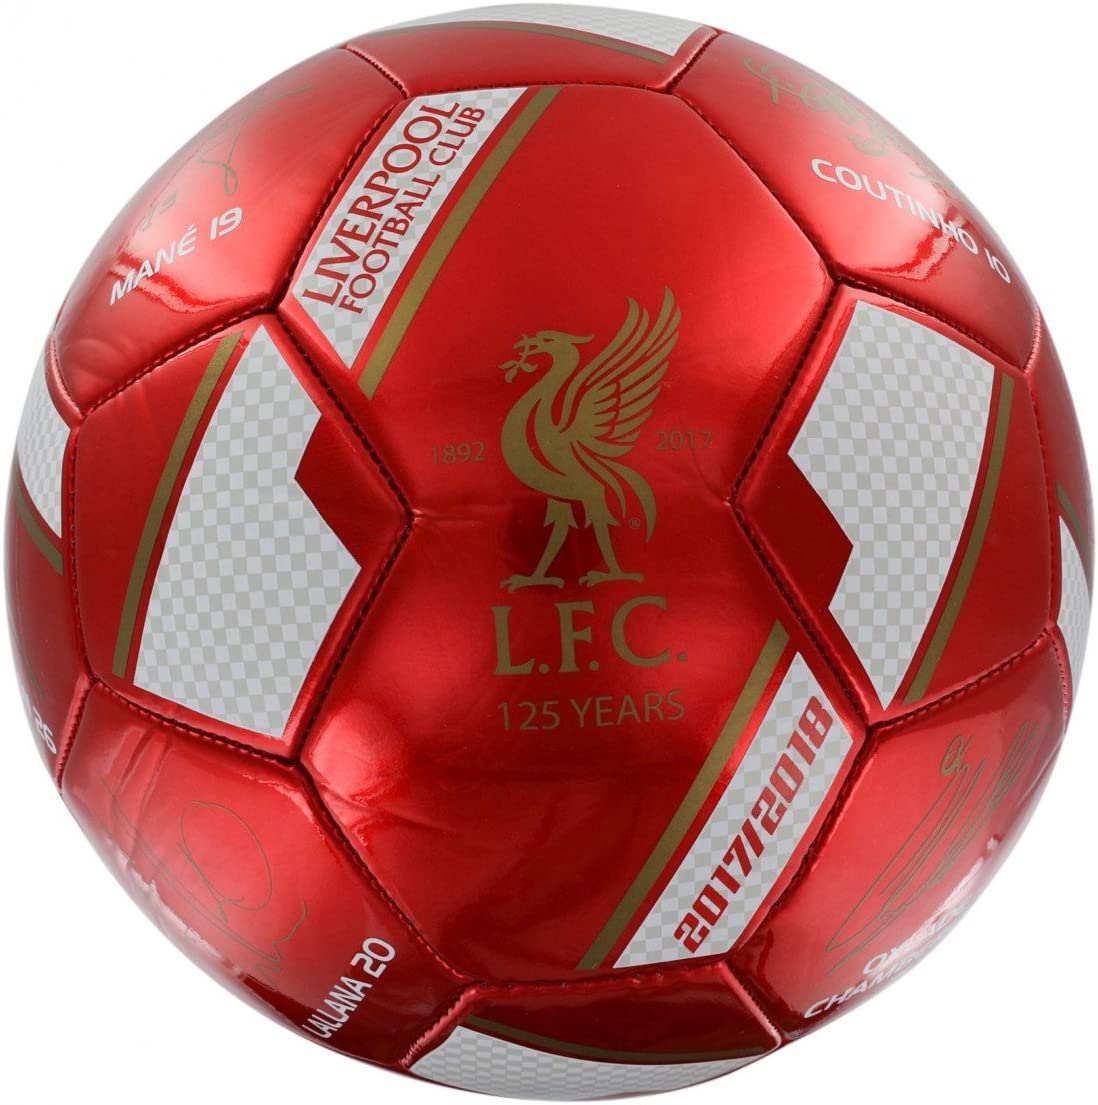 FC Liverpool firmas Ball, color rojo, tamaño 5: Amazon.es ...